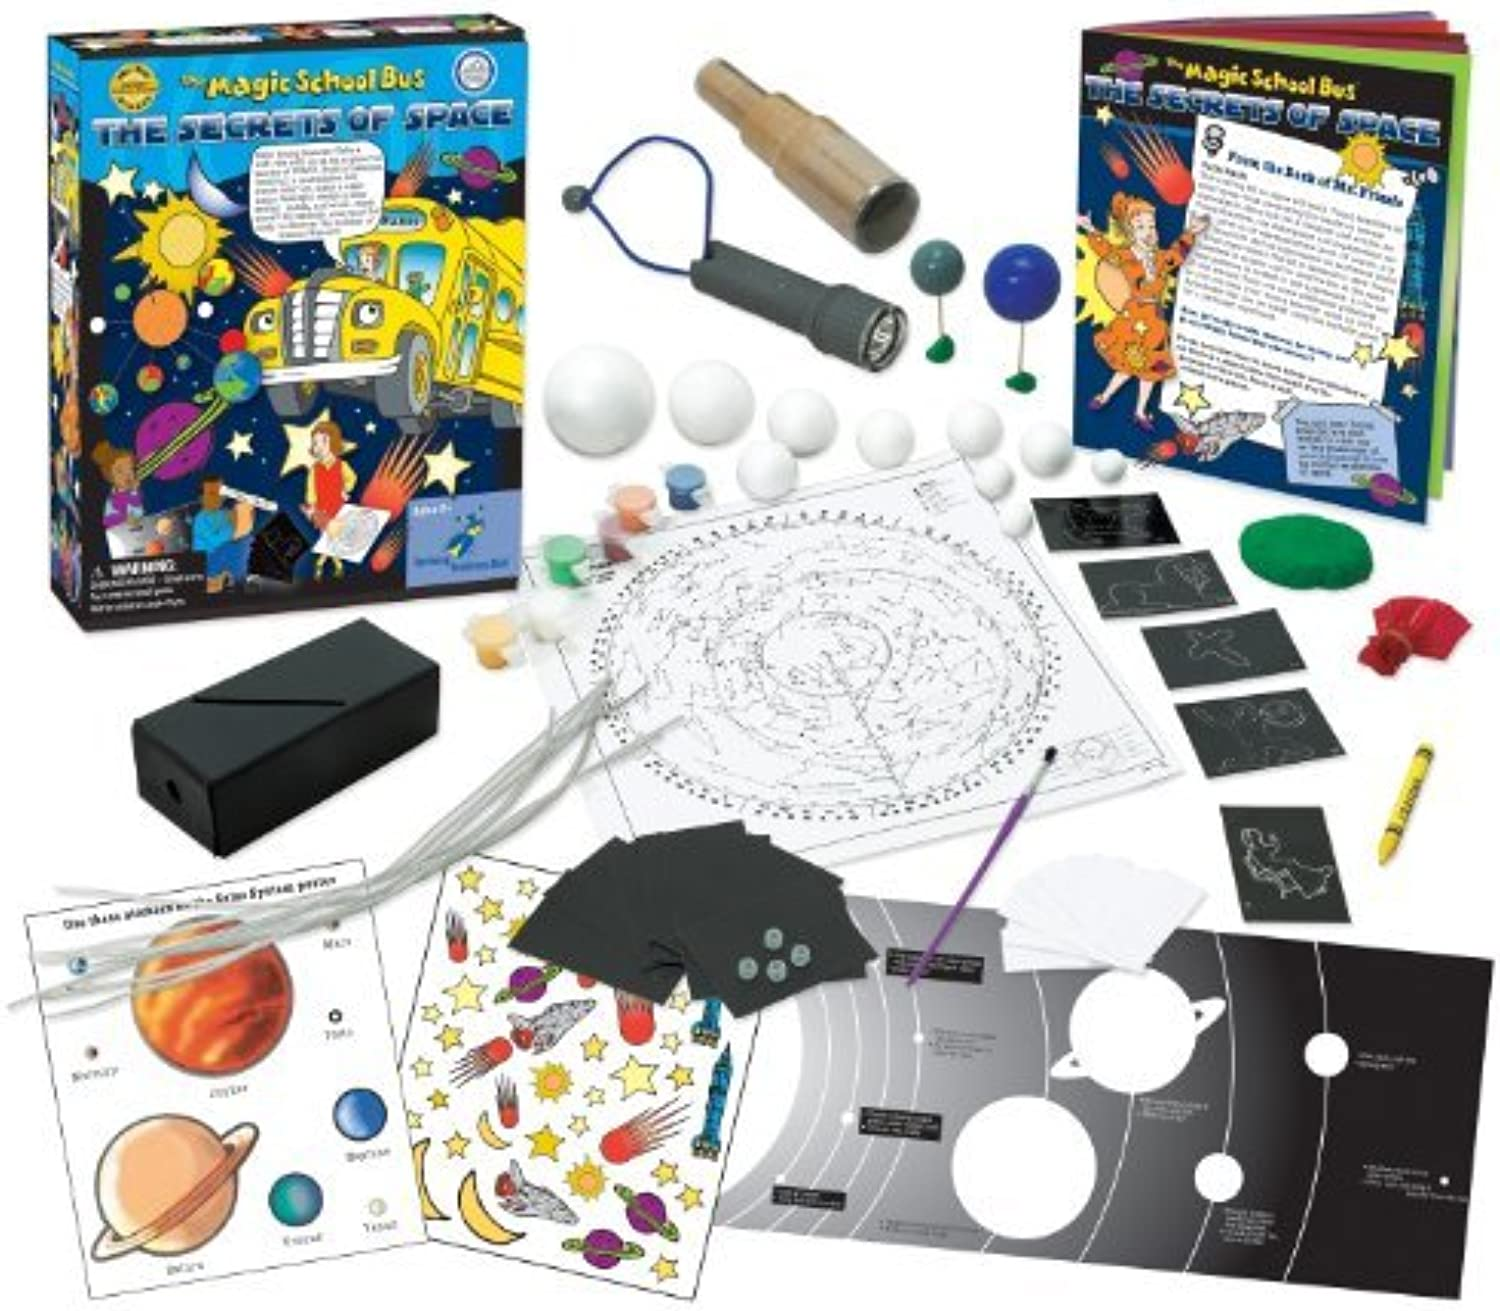 The Magic School Bus Secrets of Space by The Young Scientists Club